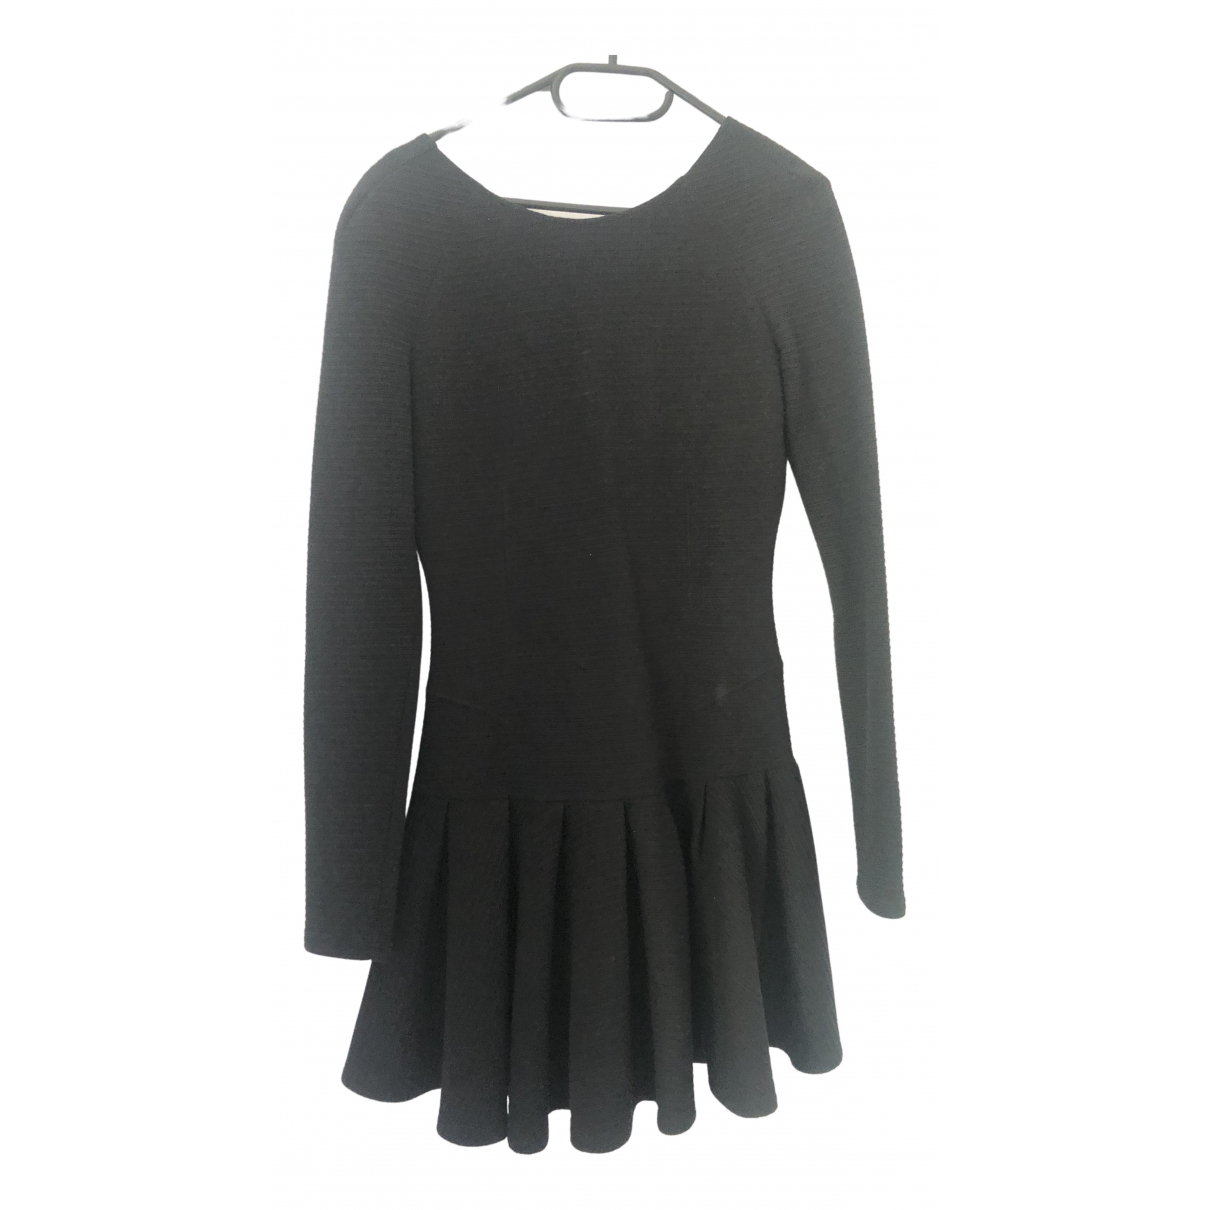 Kenzo \N Black Wool dress for Women 38 FR